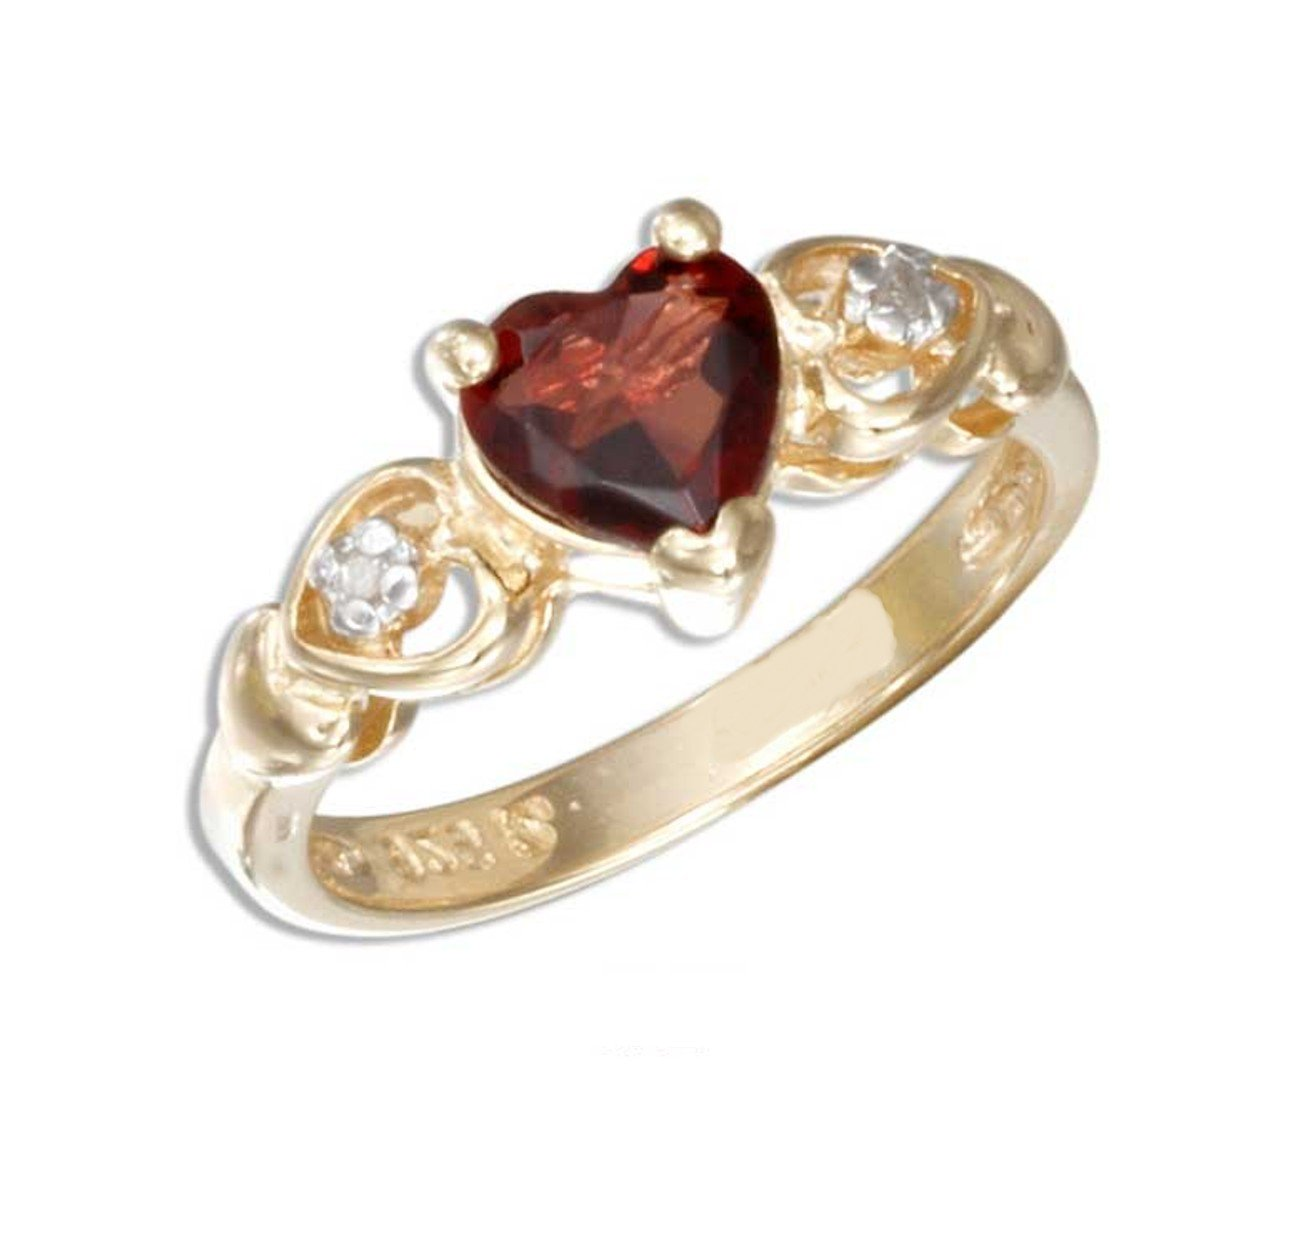 Adorable 18 KT gold vermeil ring with a garnet heart and diamond accent stones size  7